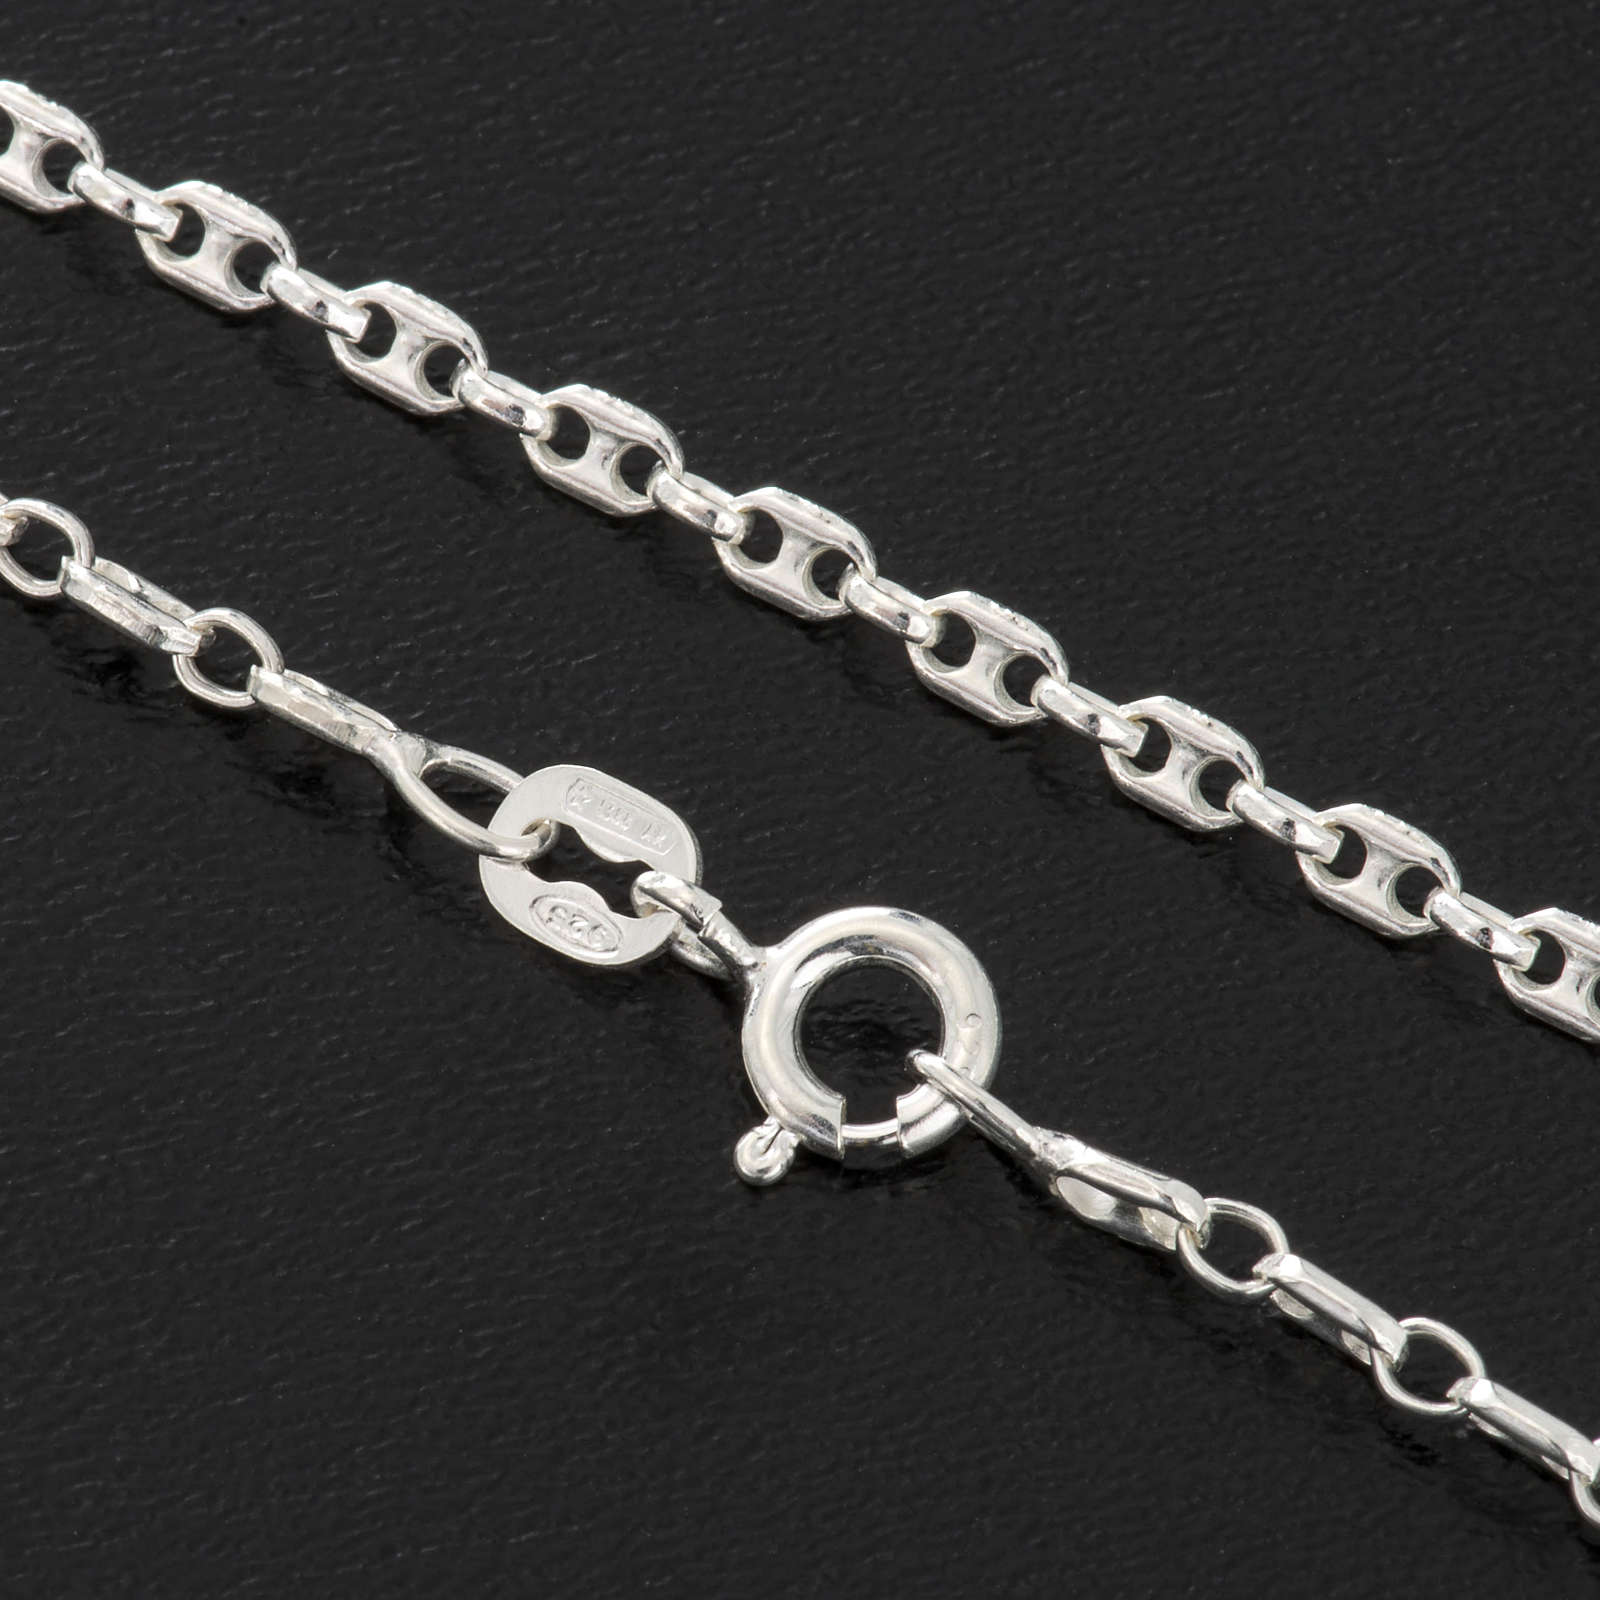 Anchor chain necklace in silver 925, 60 cm 4